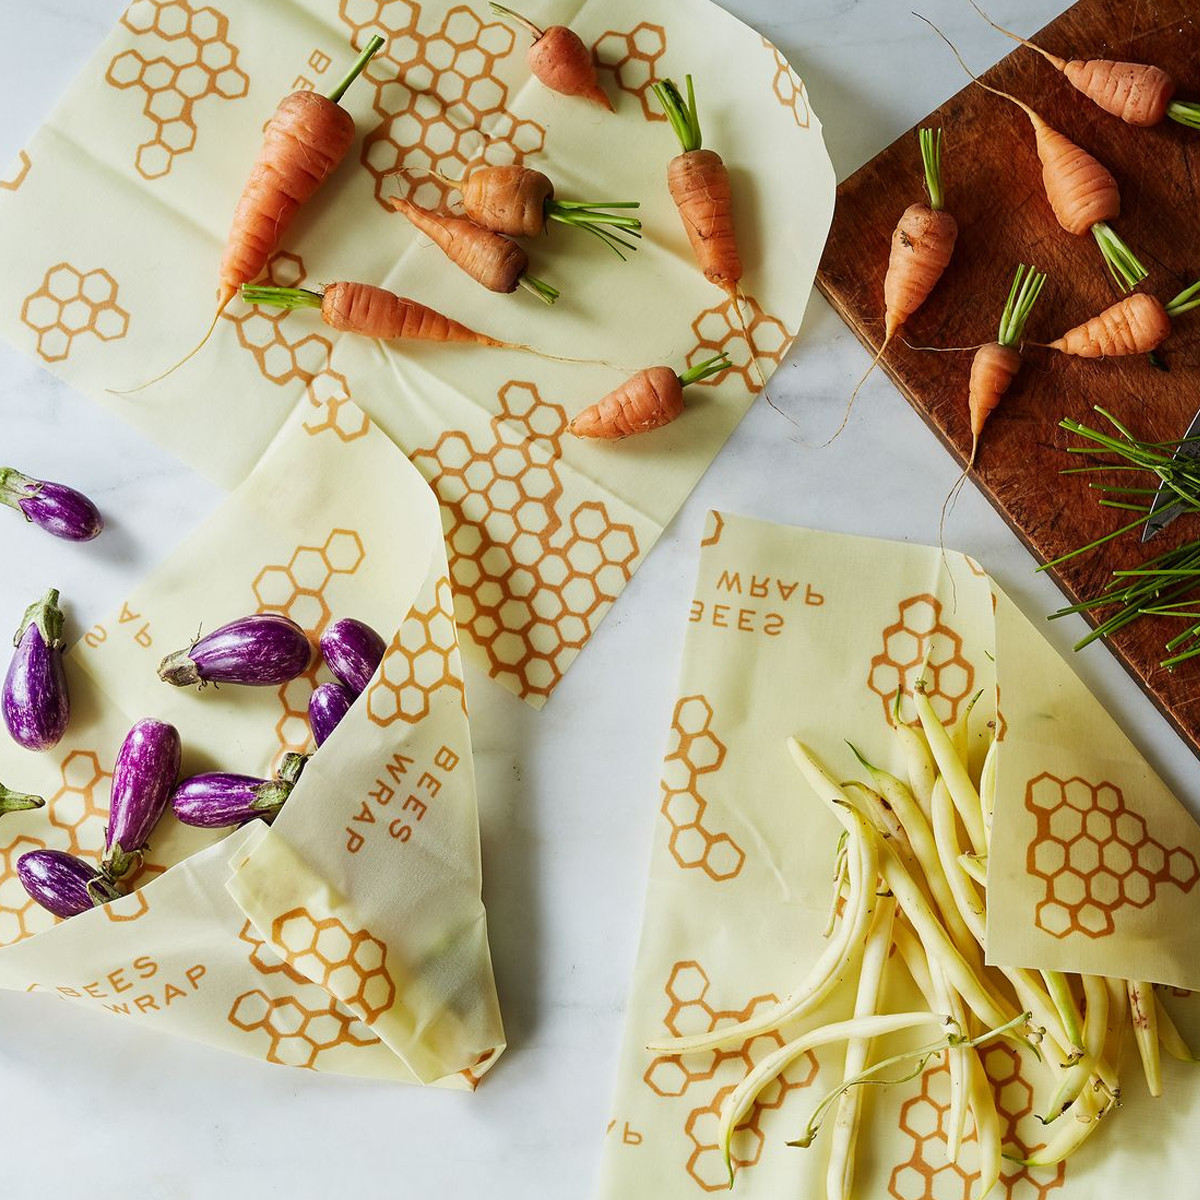 Food wraps with a beehive print on them photo